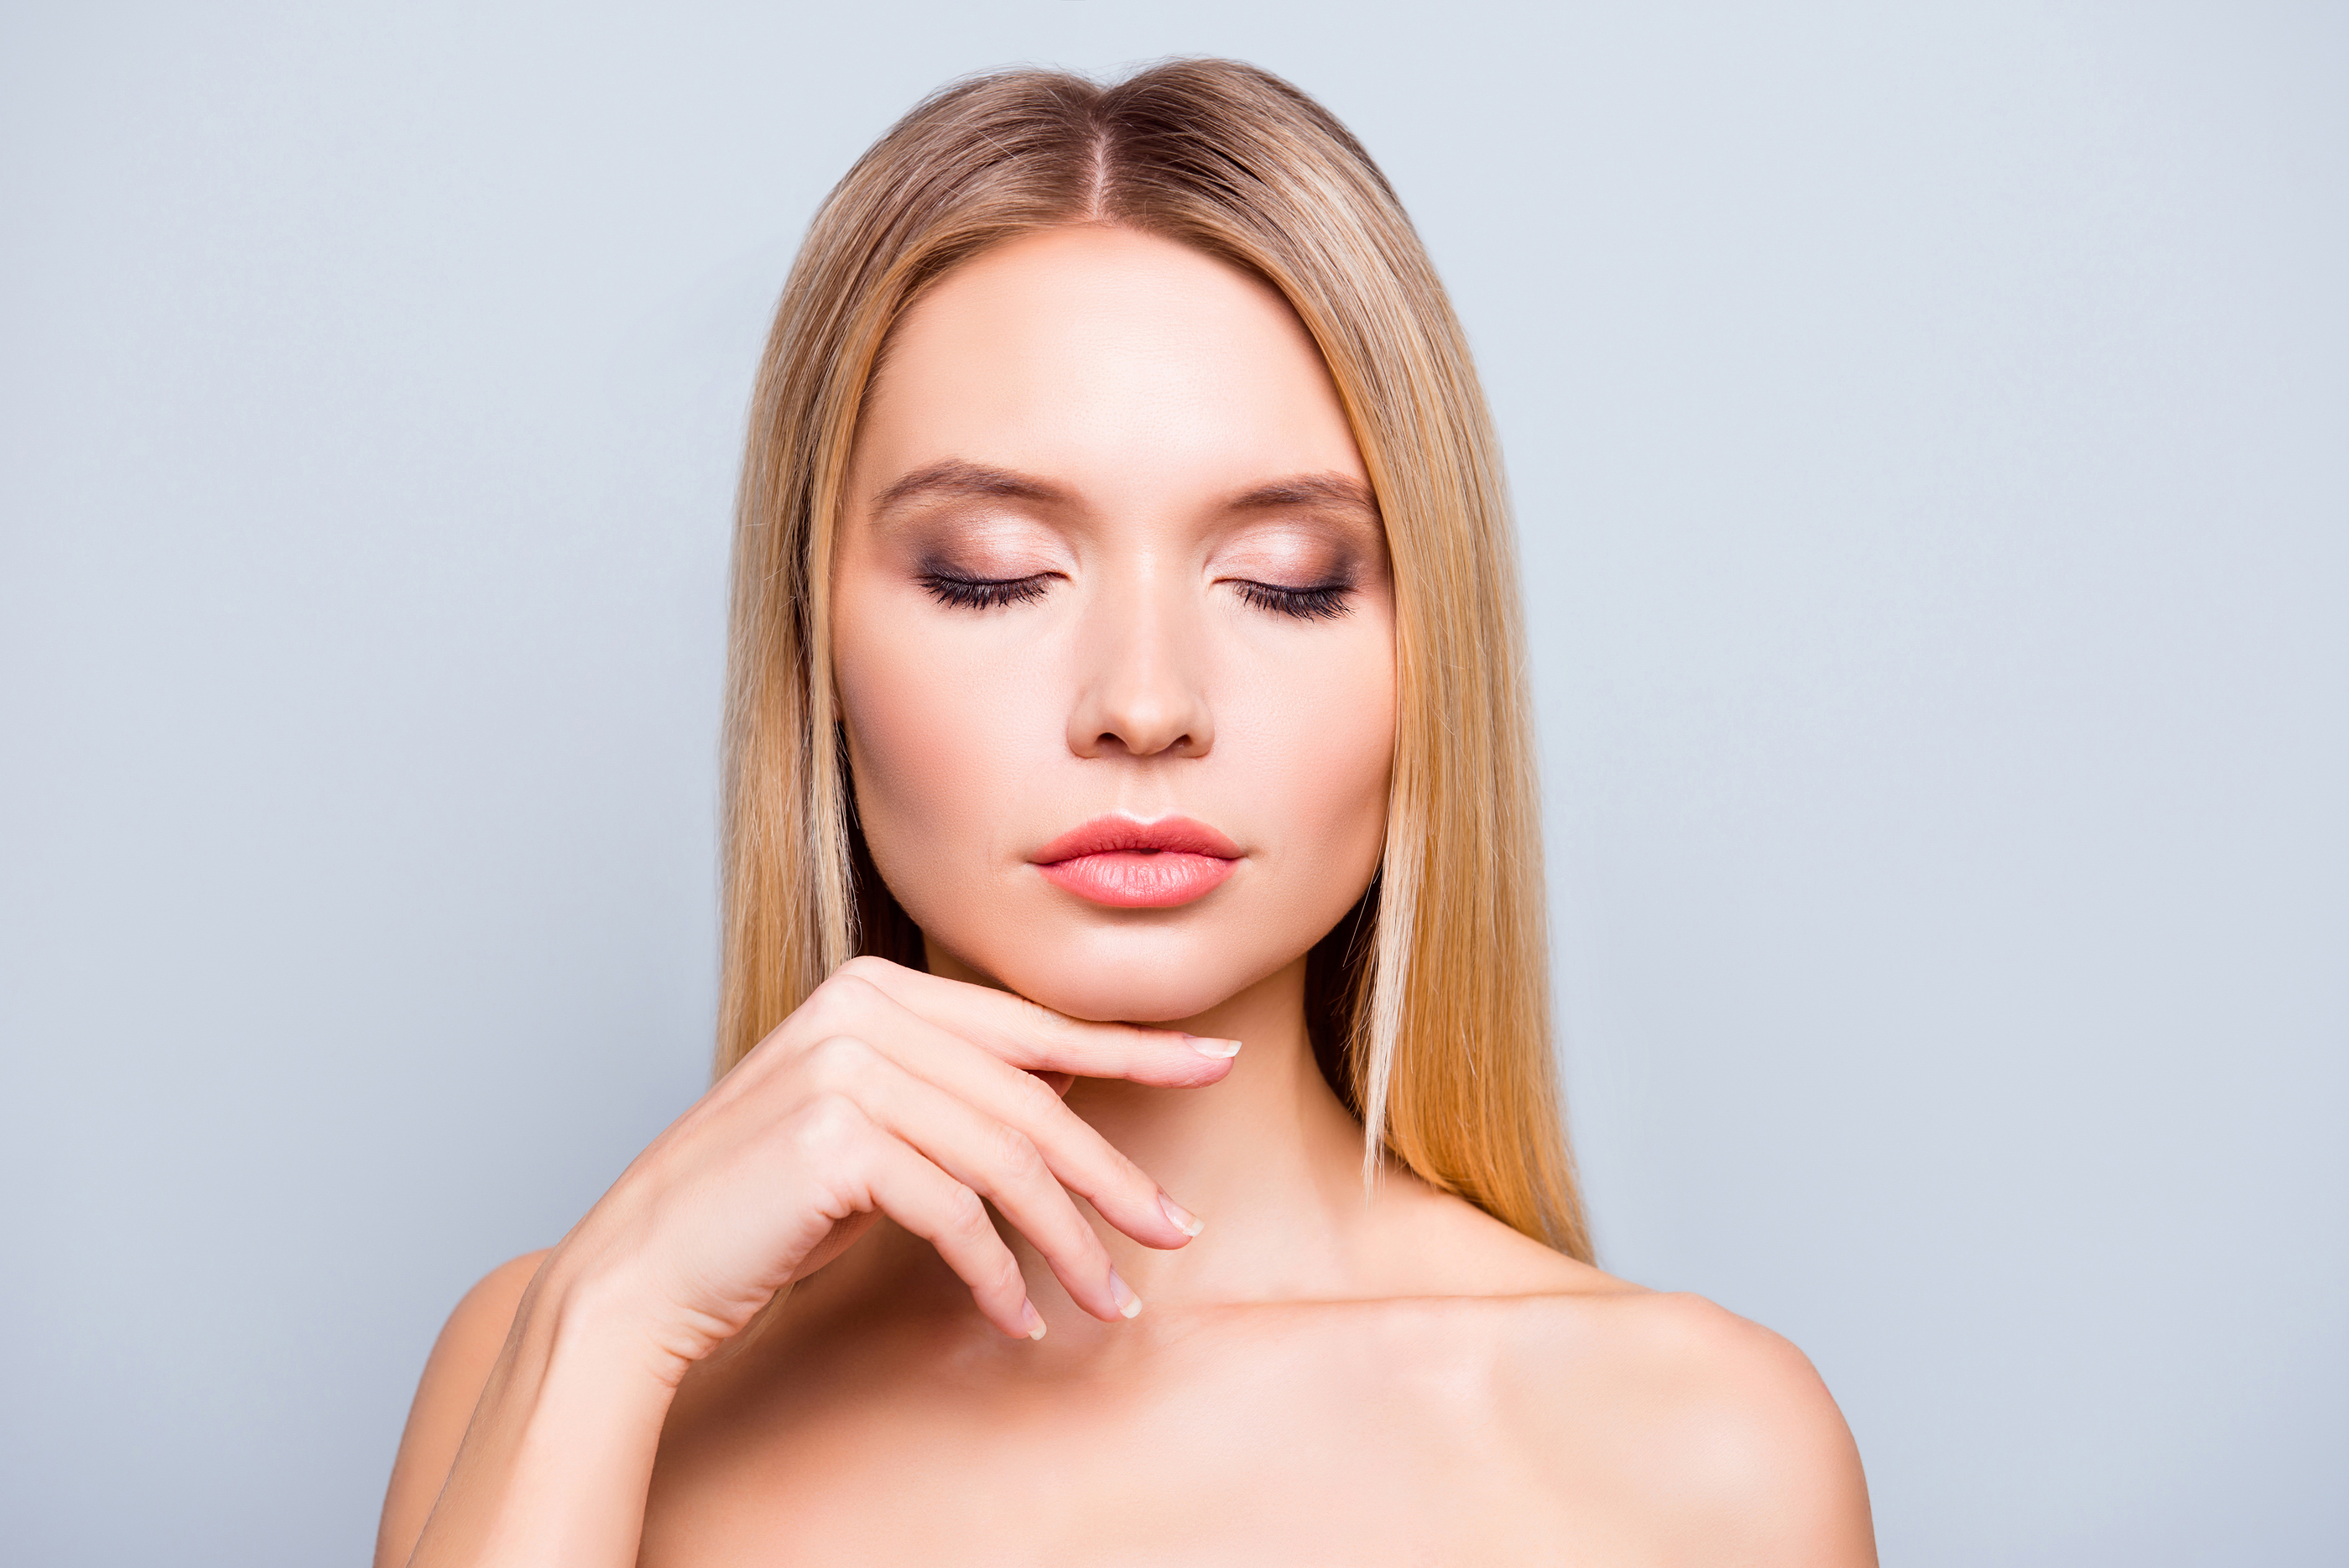 Why Does Rhinoplasty Go Hand-In-Hand With Chin Augmentation?